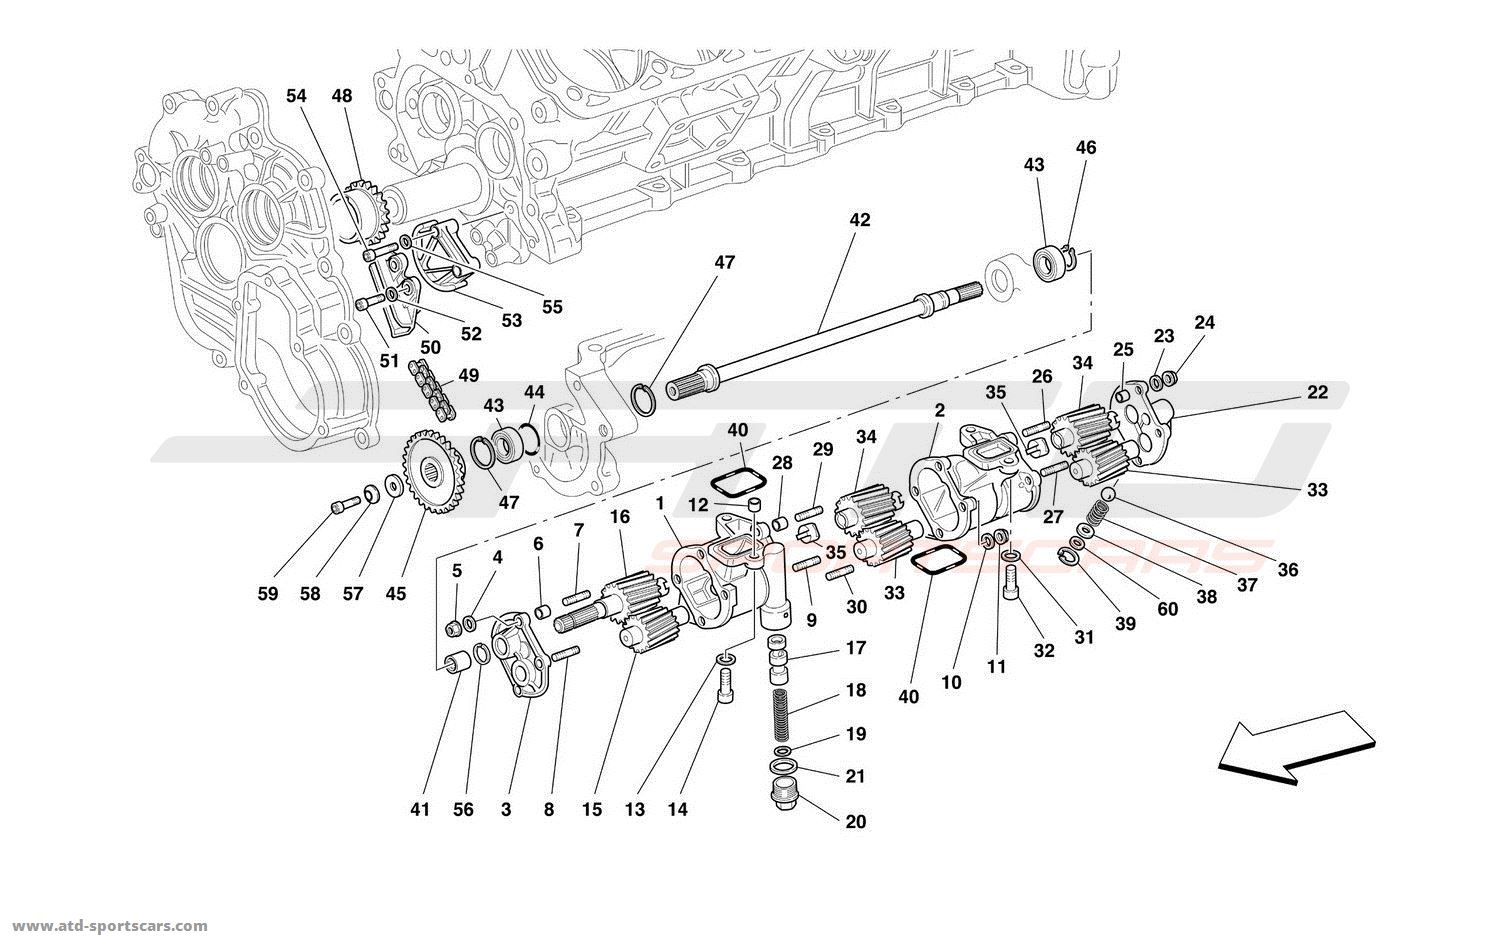 Ferrari 550 Maranello Engine Parts At Atd Sportscars